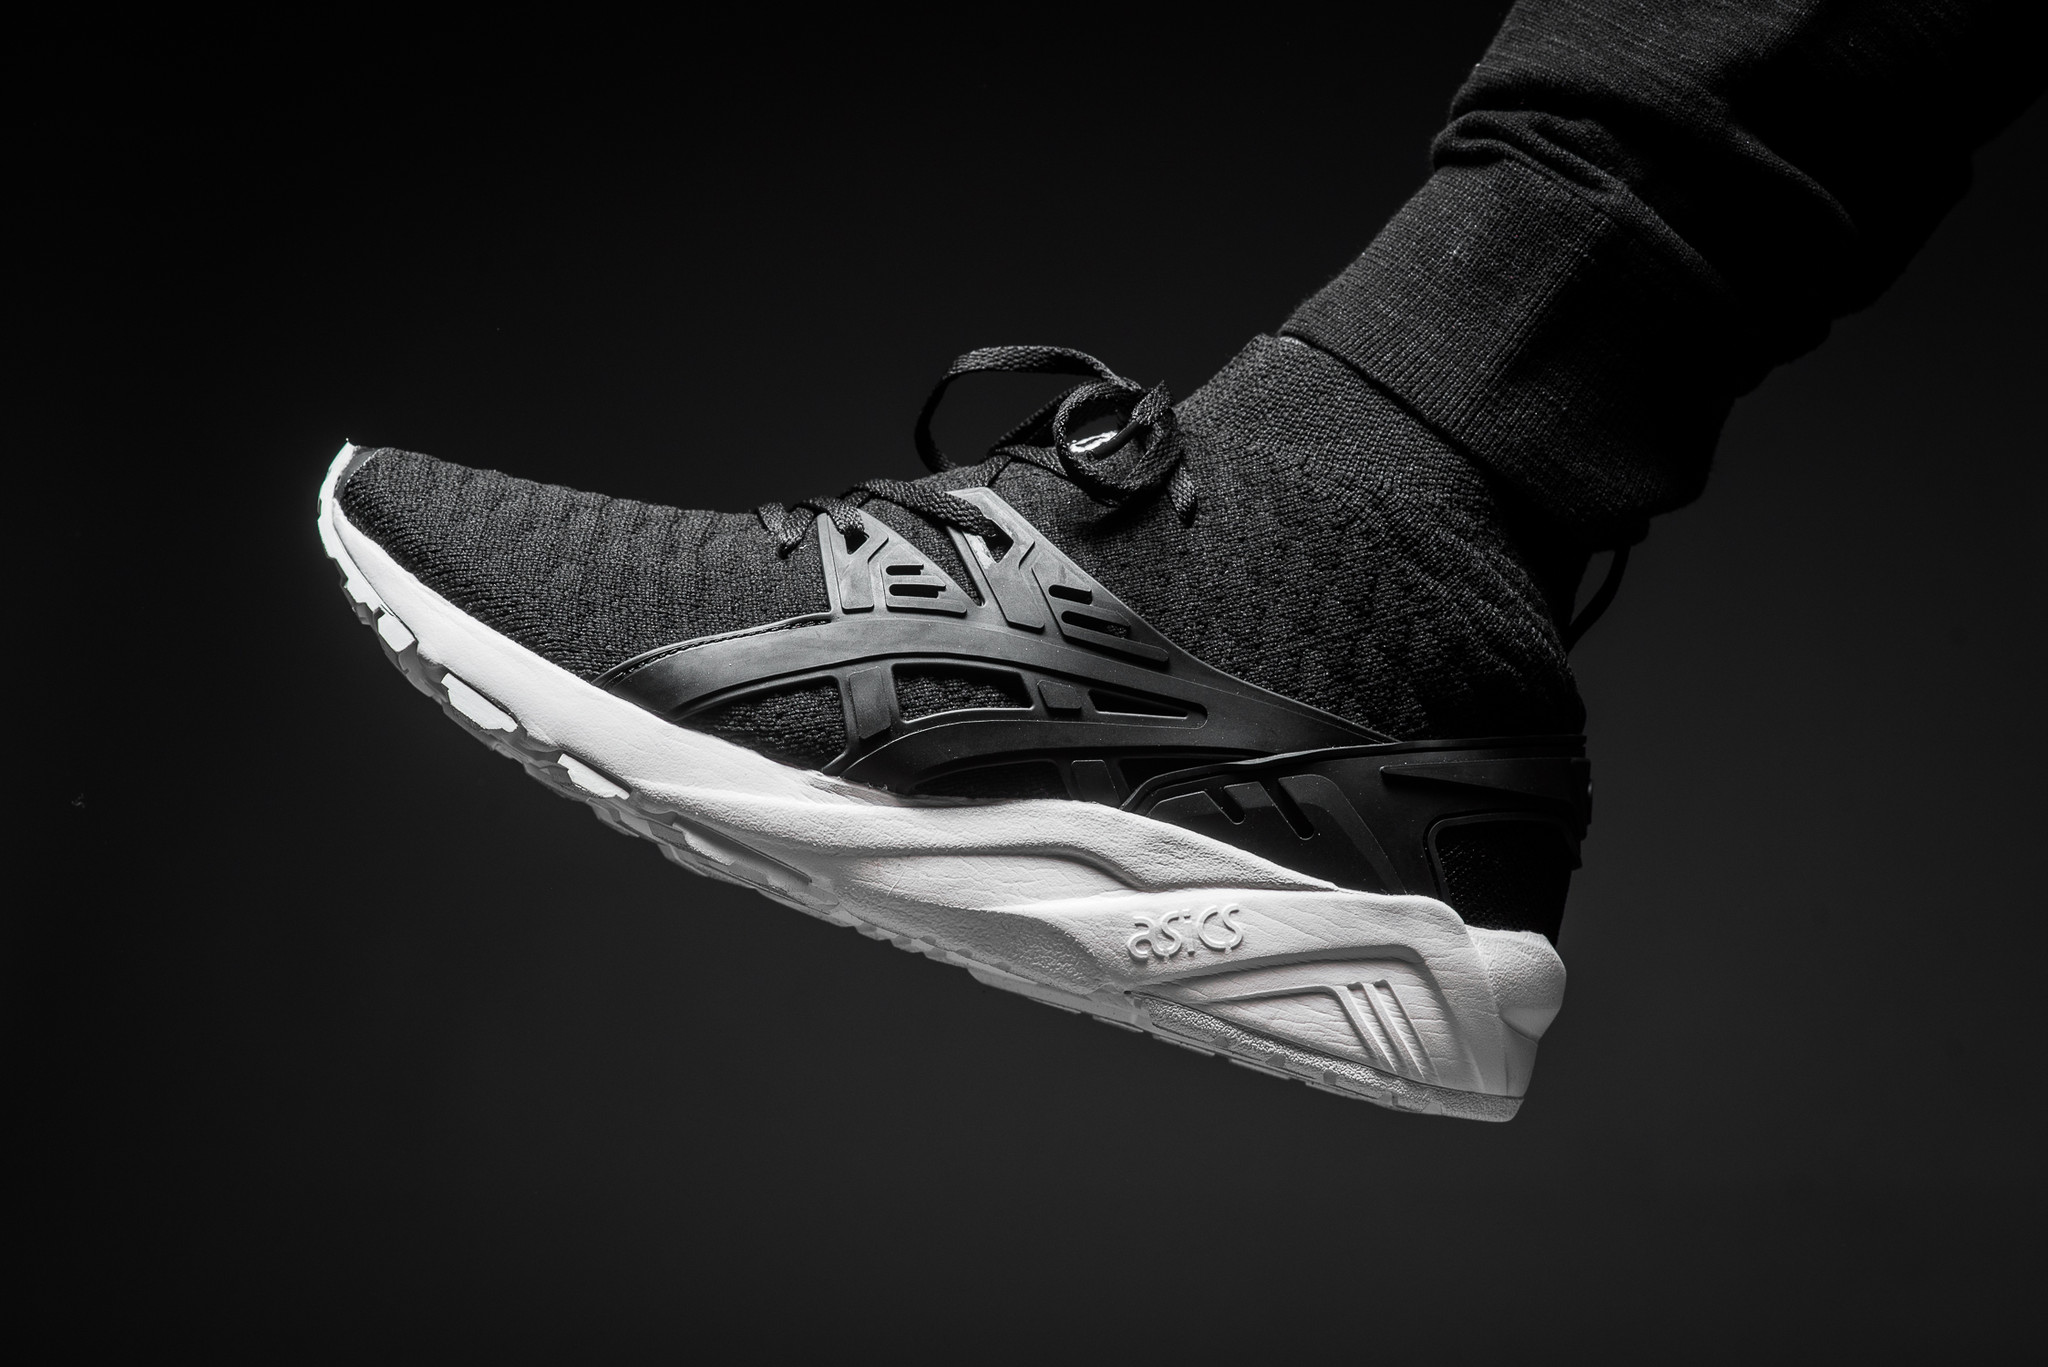 The Asics Gel Kayano Trainer Gets a Knit Makeover WearTesters